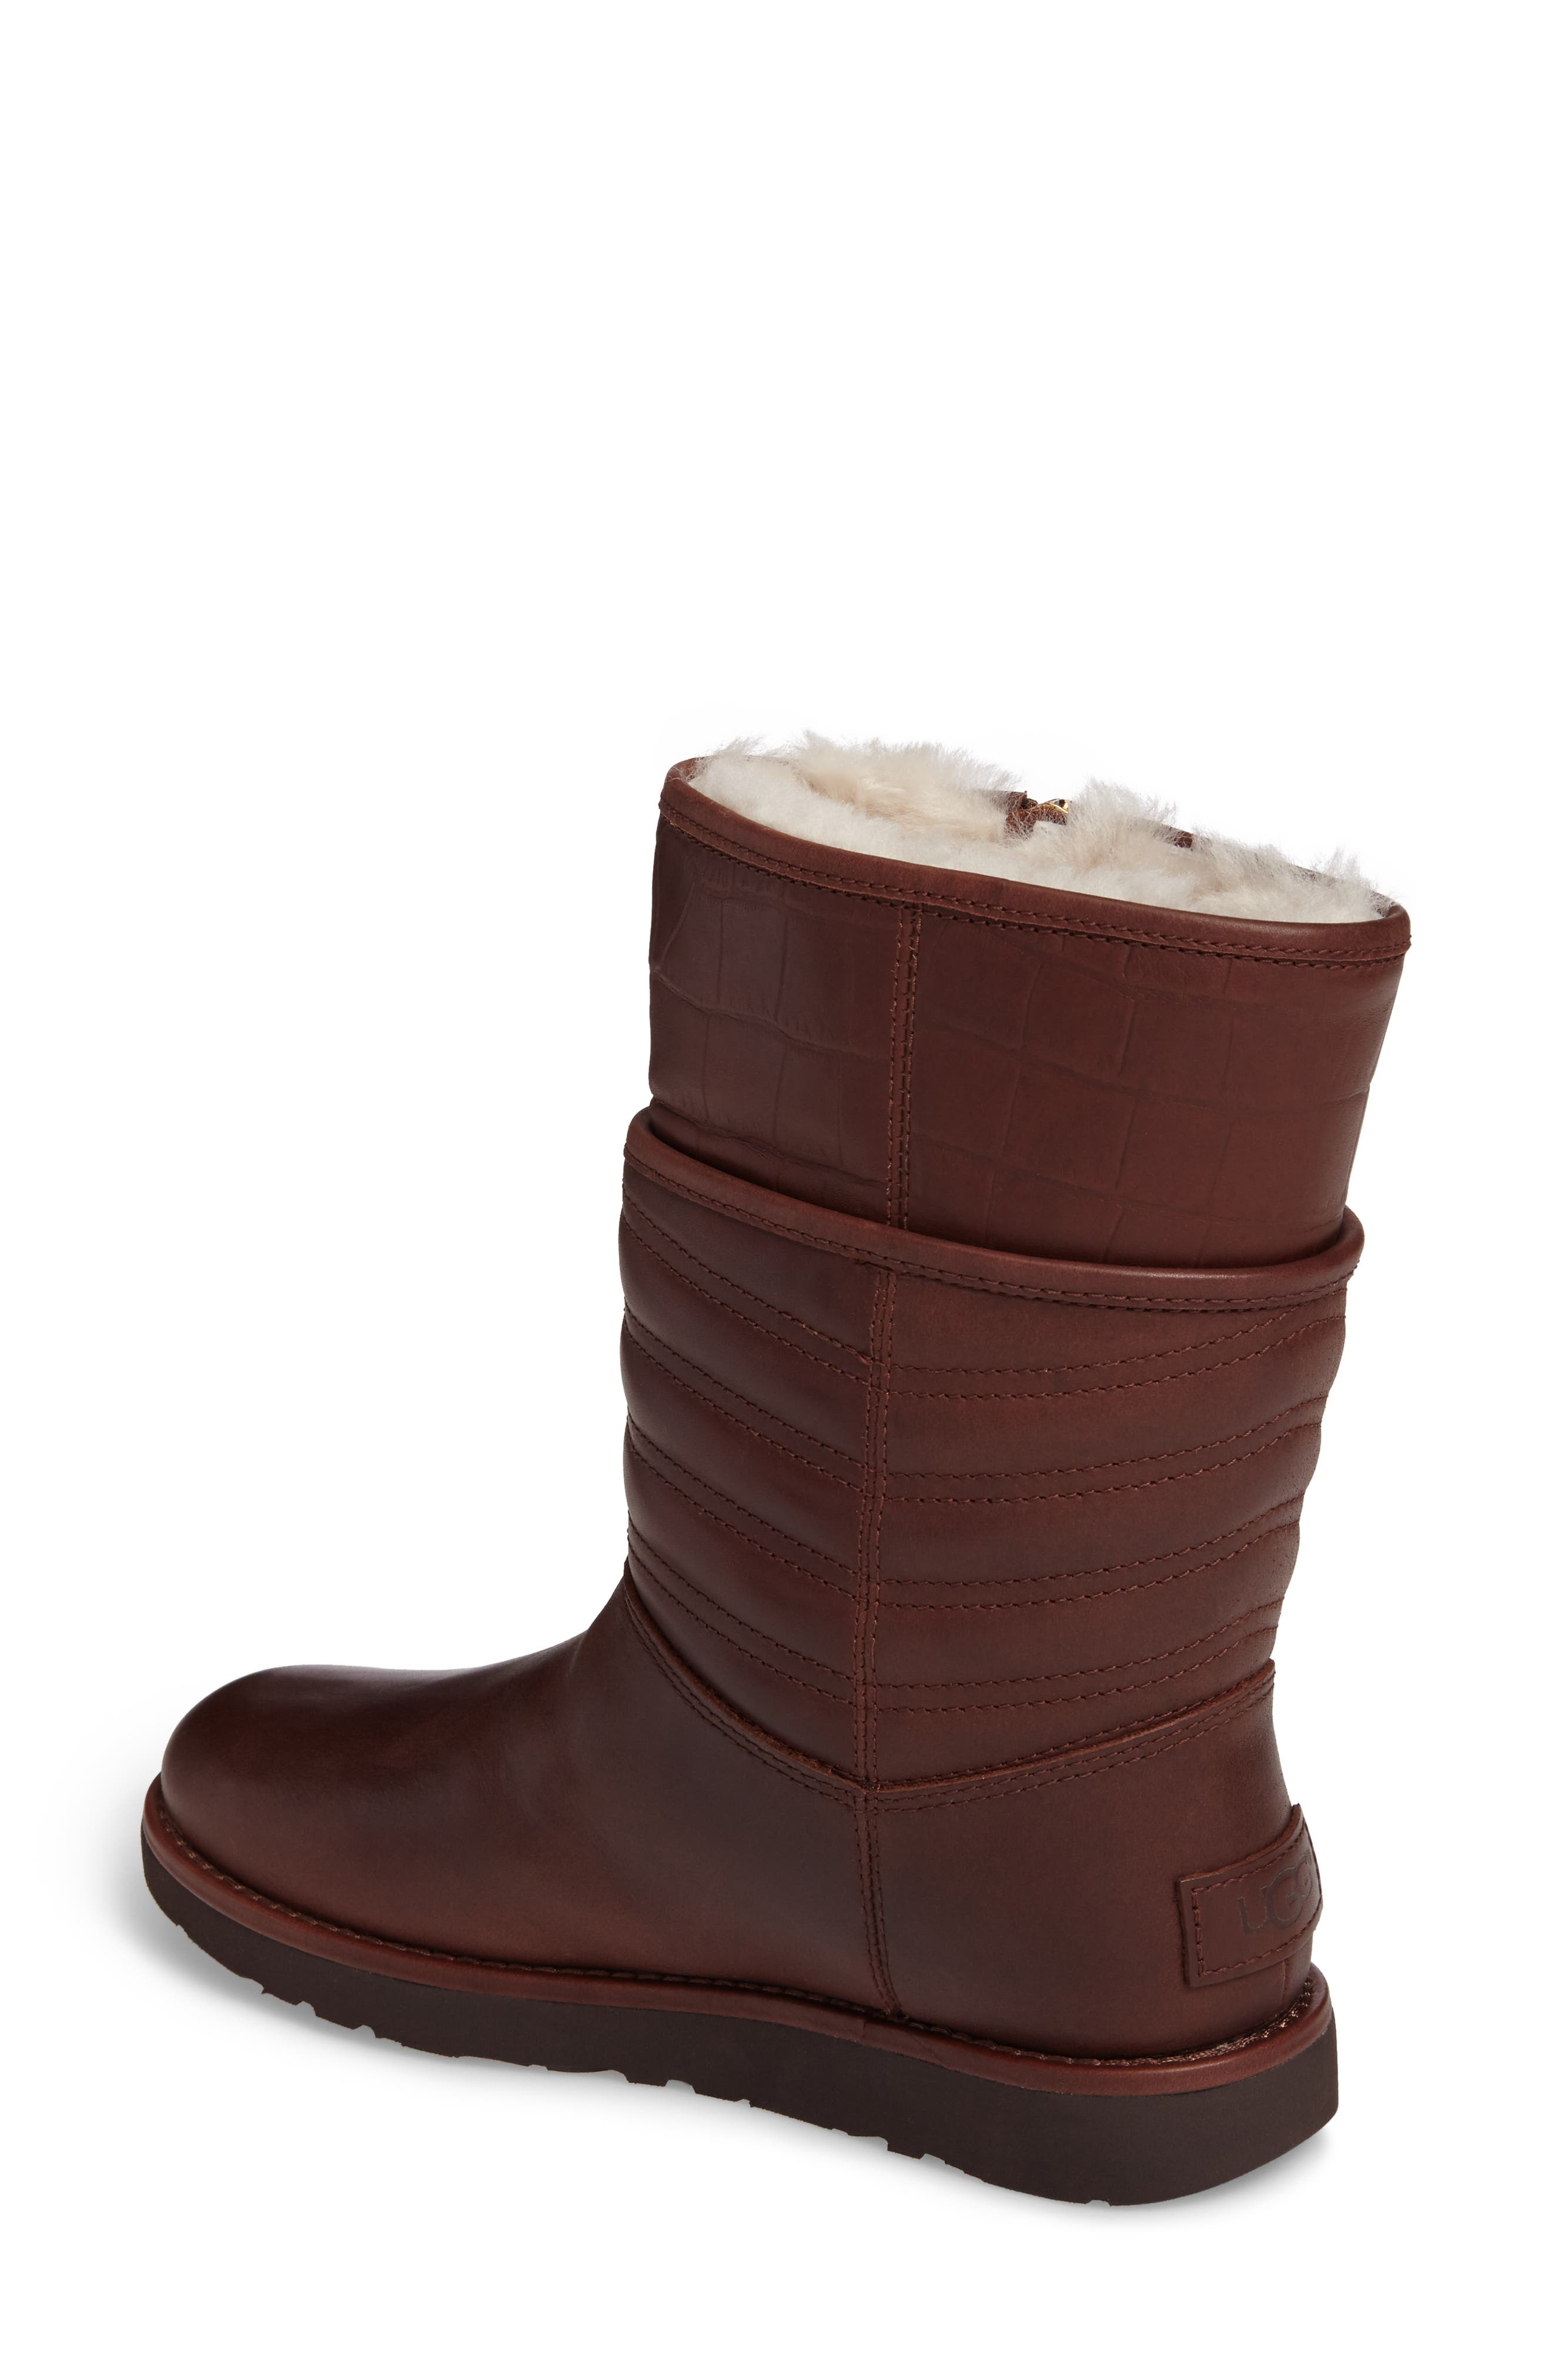 Alternate Image 2  - UGG® Aviva Genuine Shearling Lined Boot (Women)